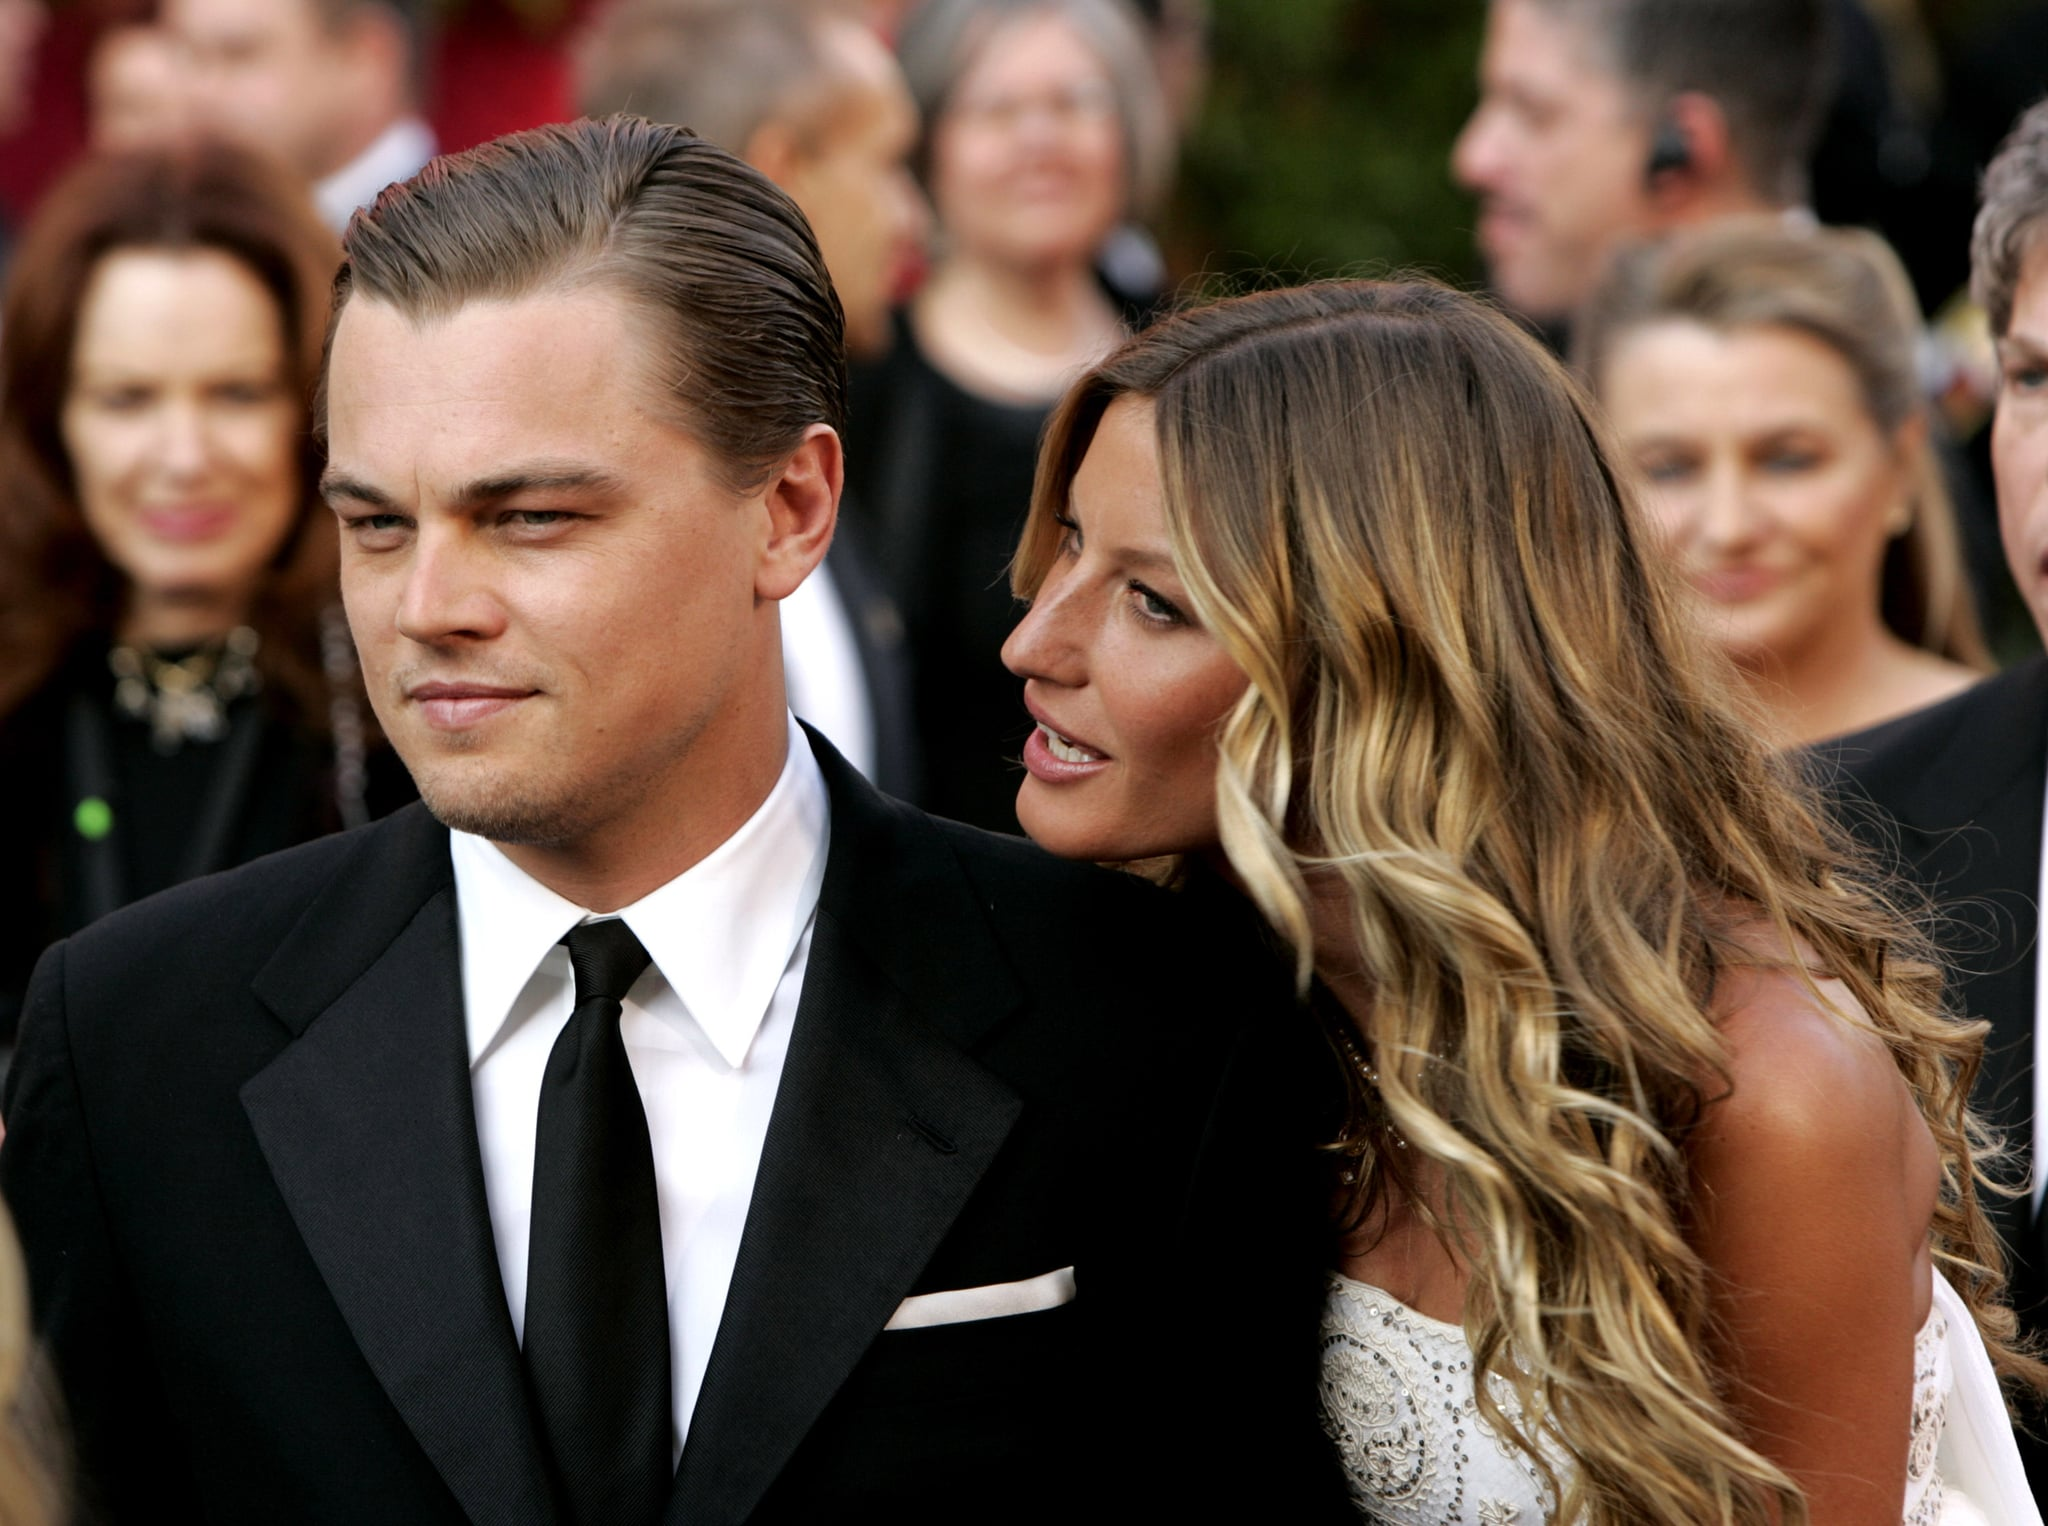 Gisele Bündchen admits the real reason she split from Leonardo DiCaprio